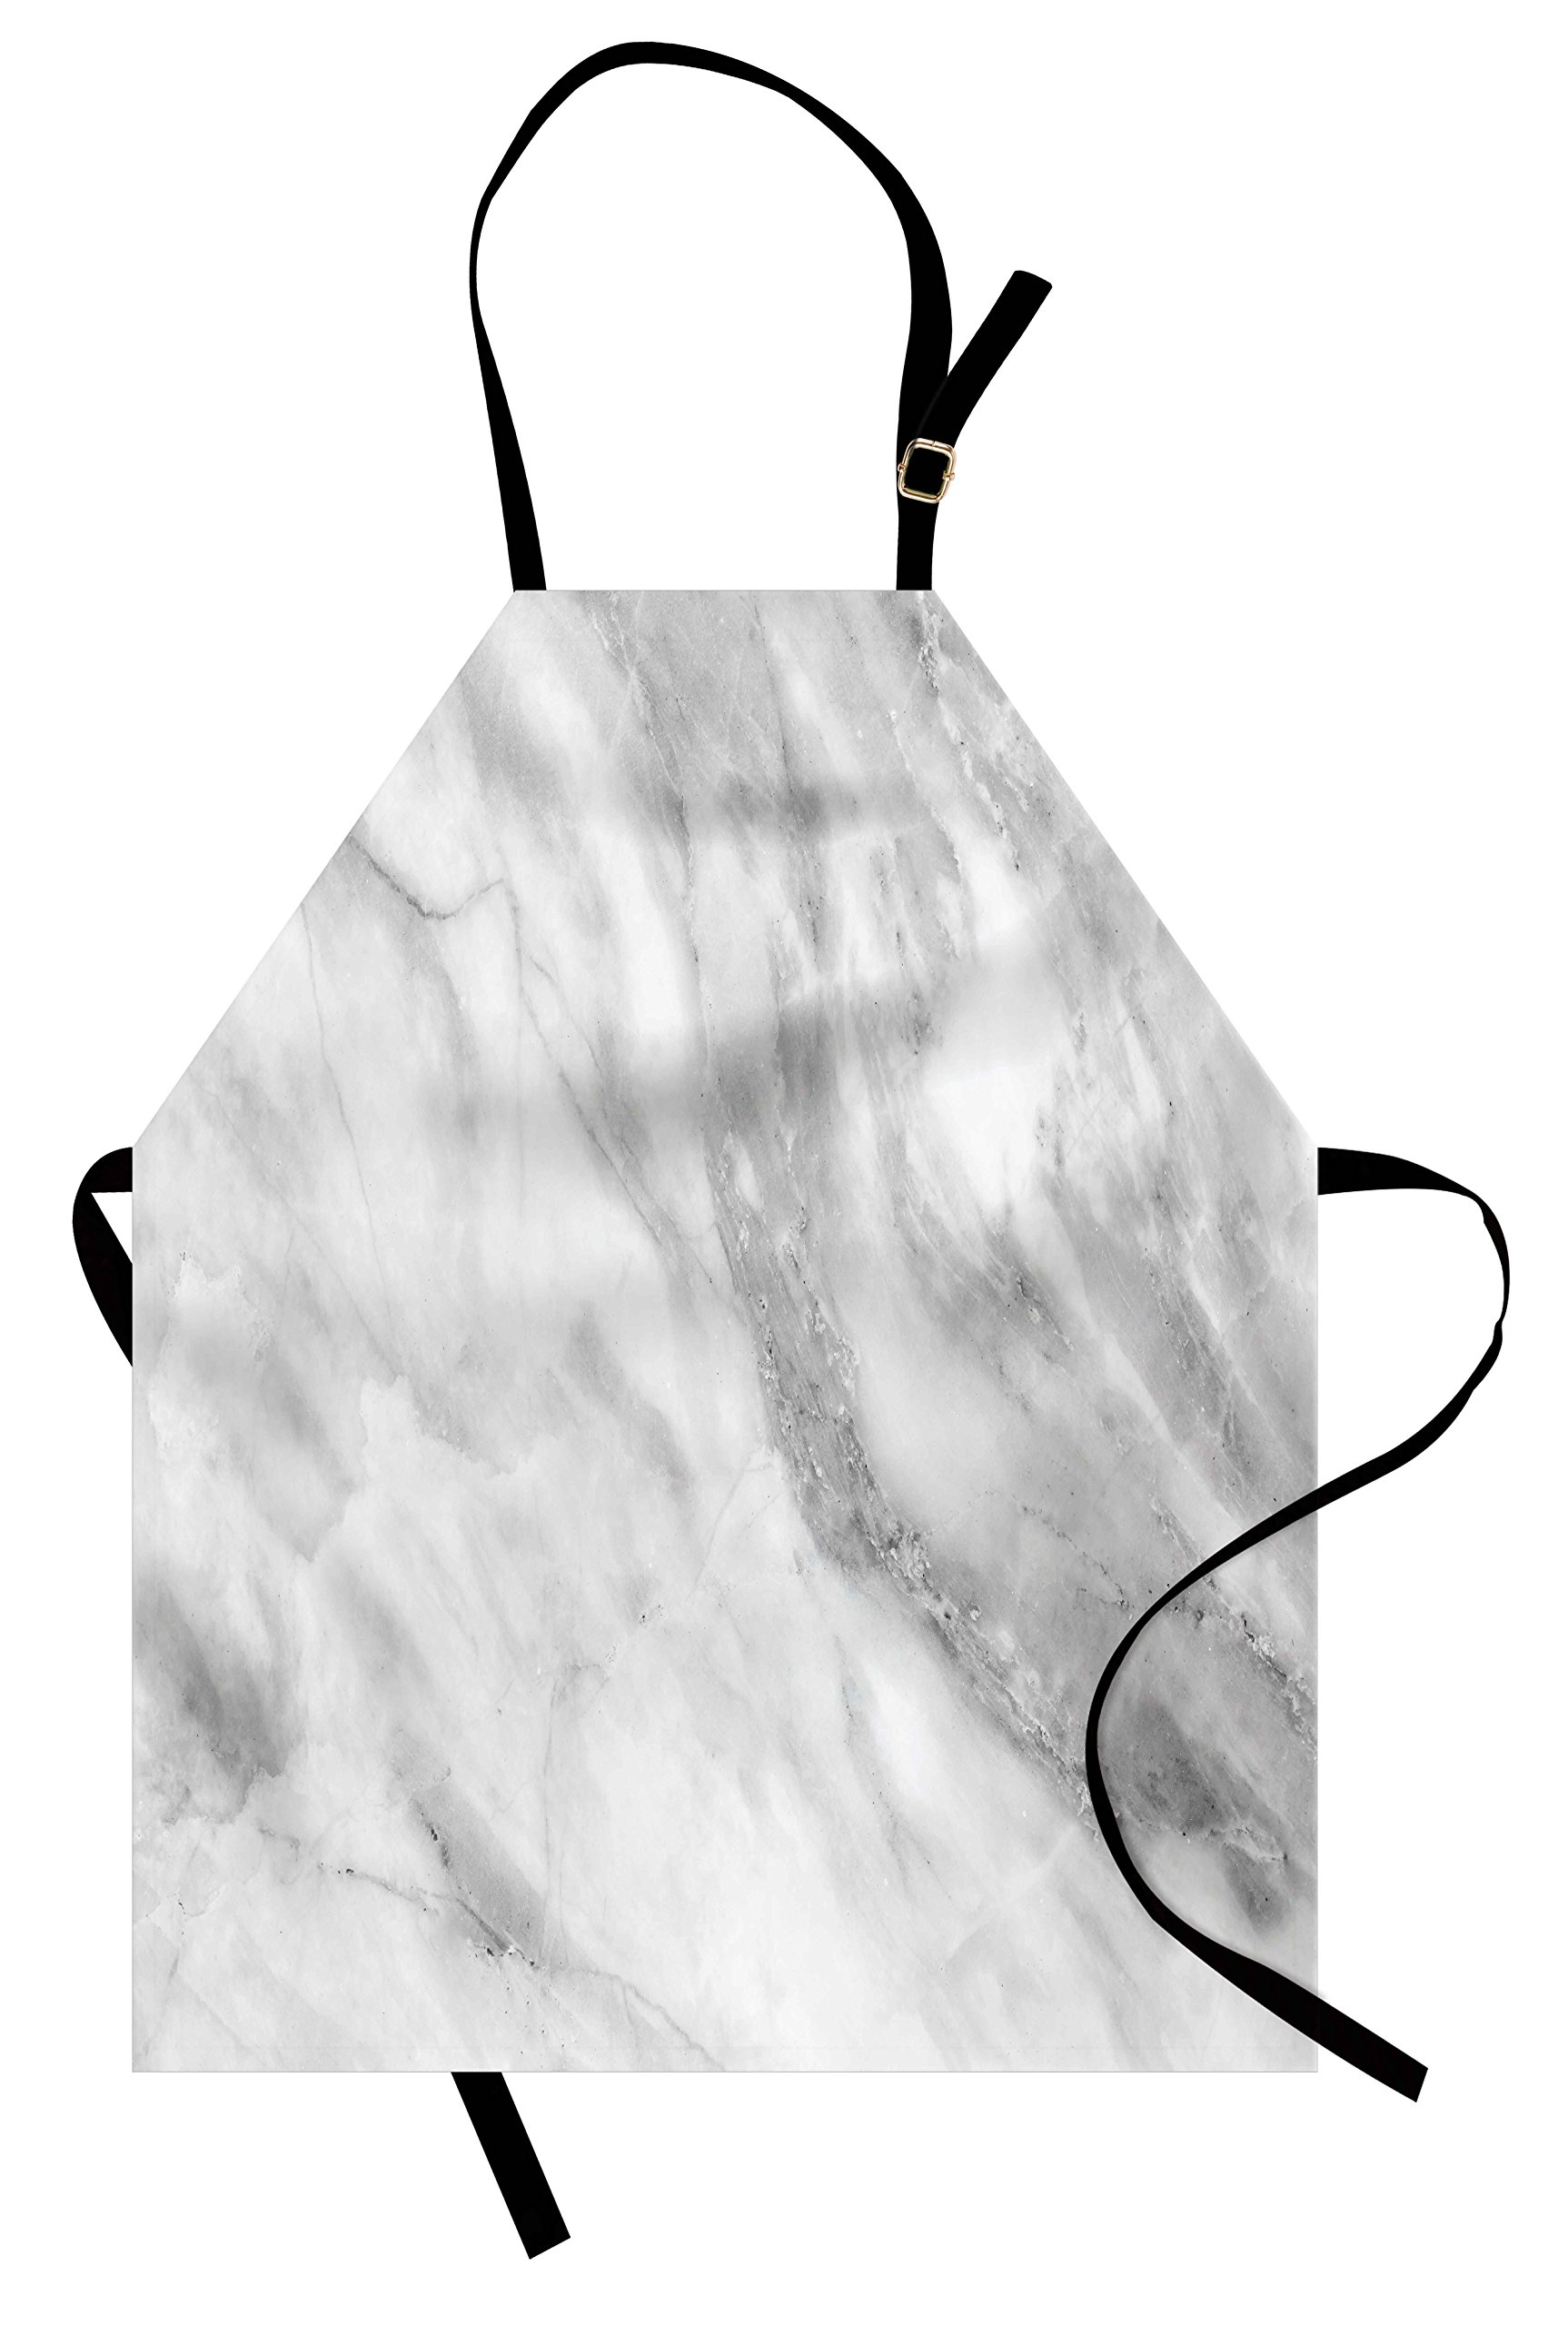 Ambesonne Marble Apron, Marble Surface Textured Hazy Cracks and Veins Shady Limestone Ceramic Artful Print, Unisex Kitchen Bib Apron with Adjustable Neck for Cooking Baking Gardening, Grey Dust